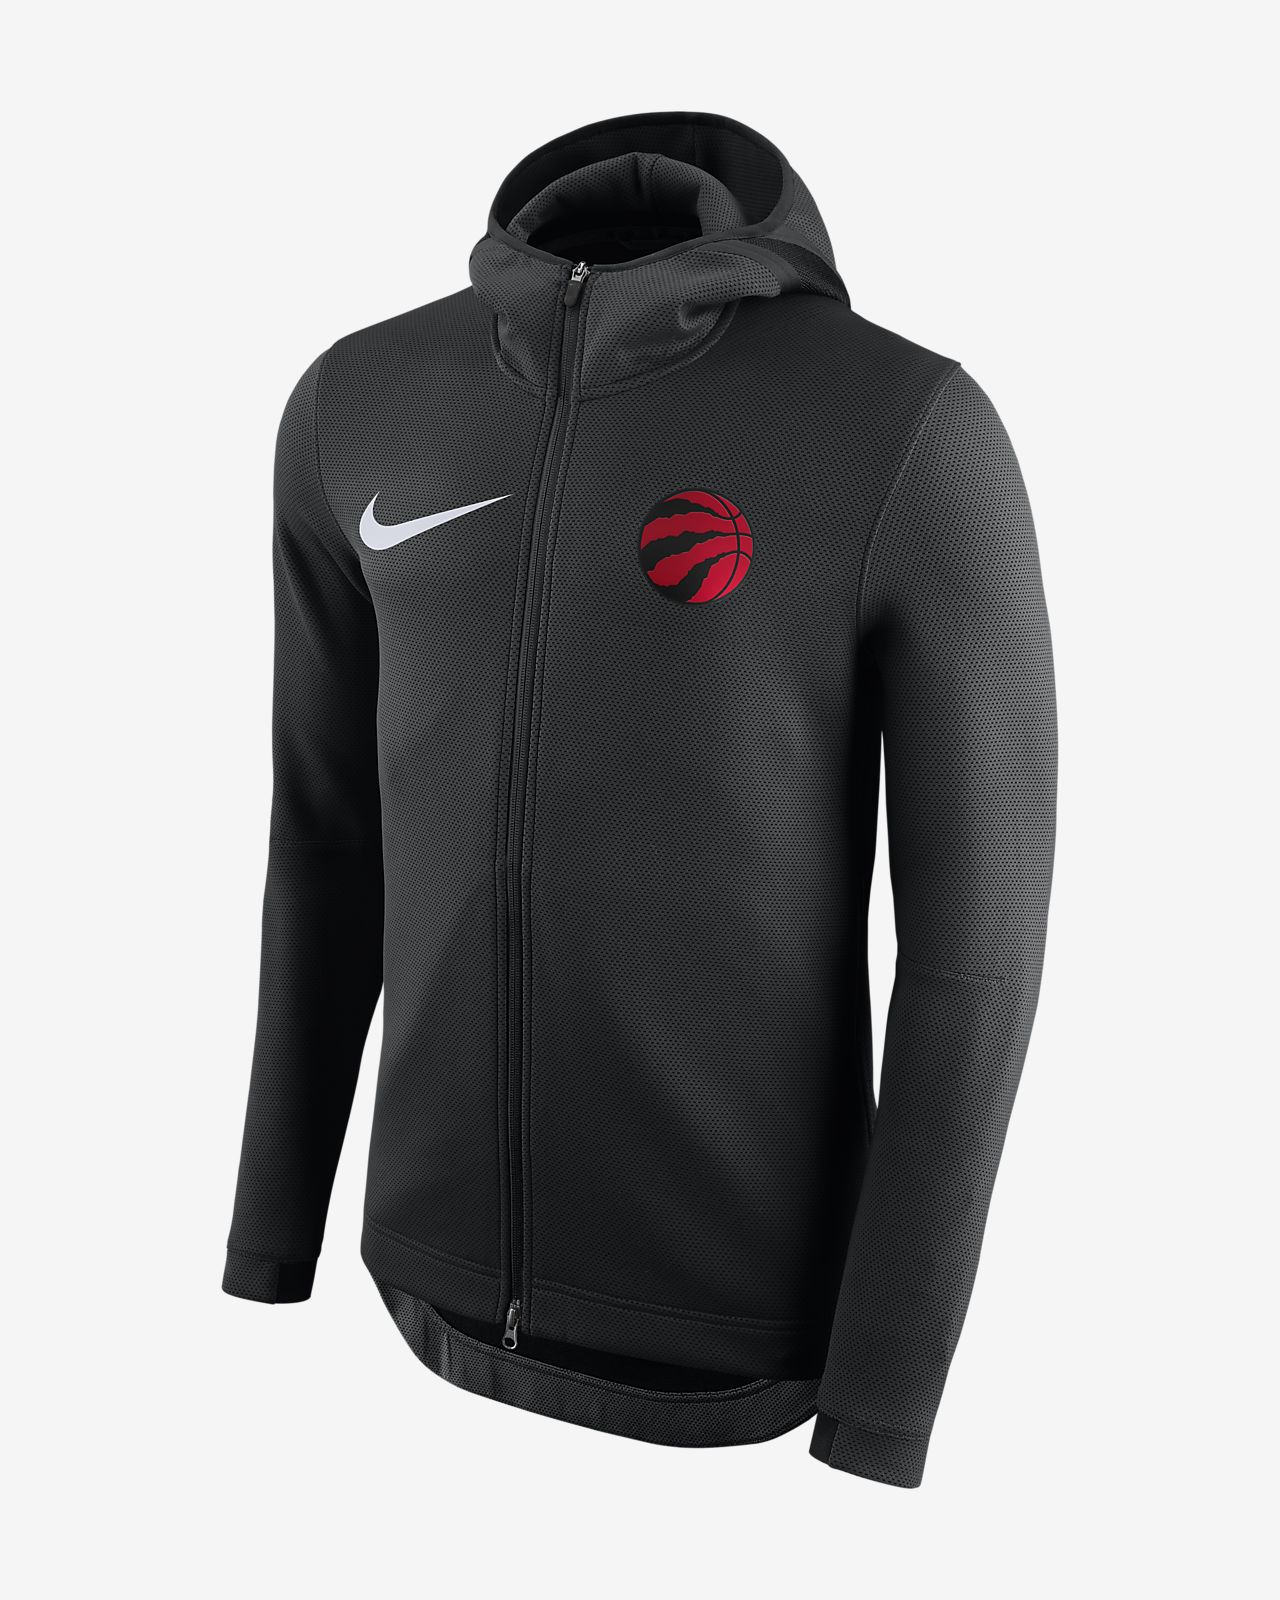 Toronto Raptors Nike Therma Flex Showtime Men's NBA Hoodie